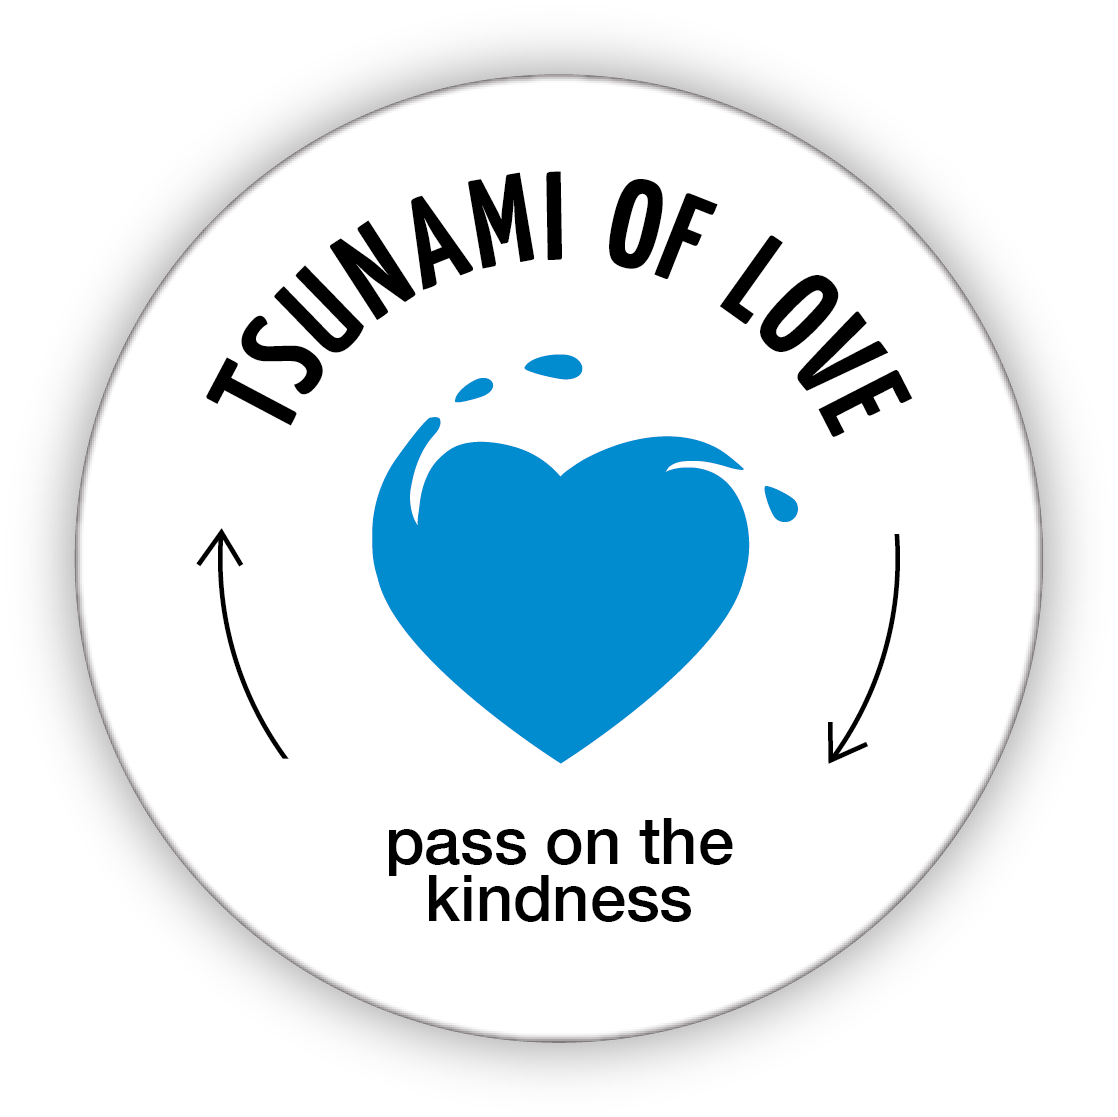 Tsunami of Love coin